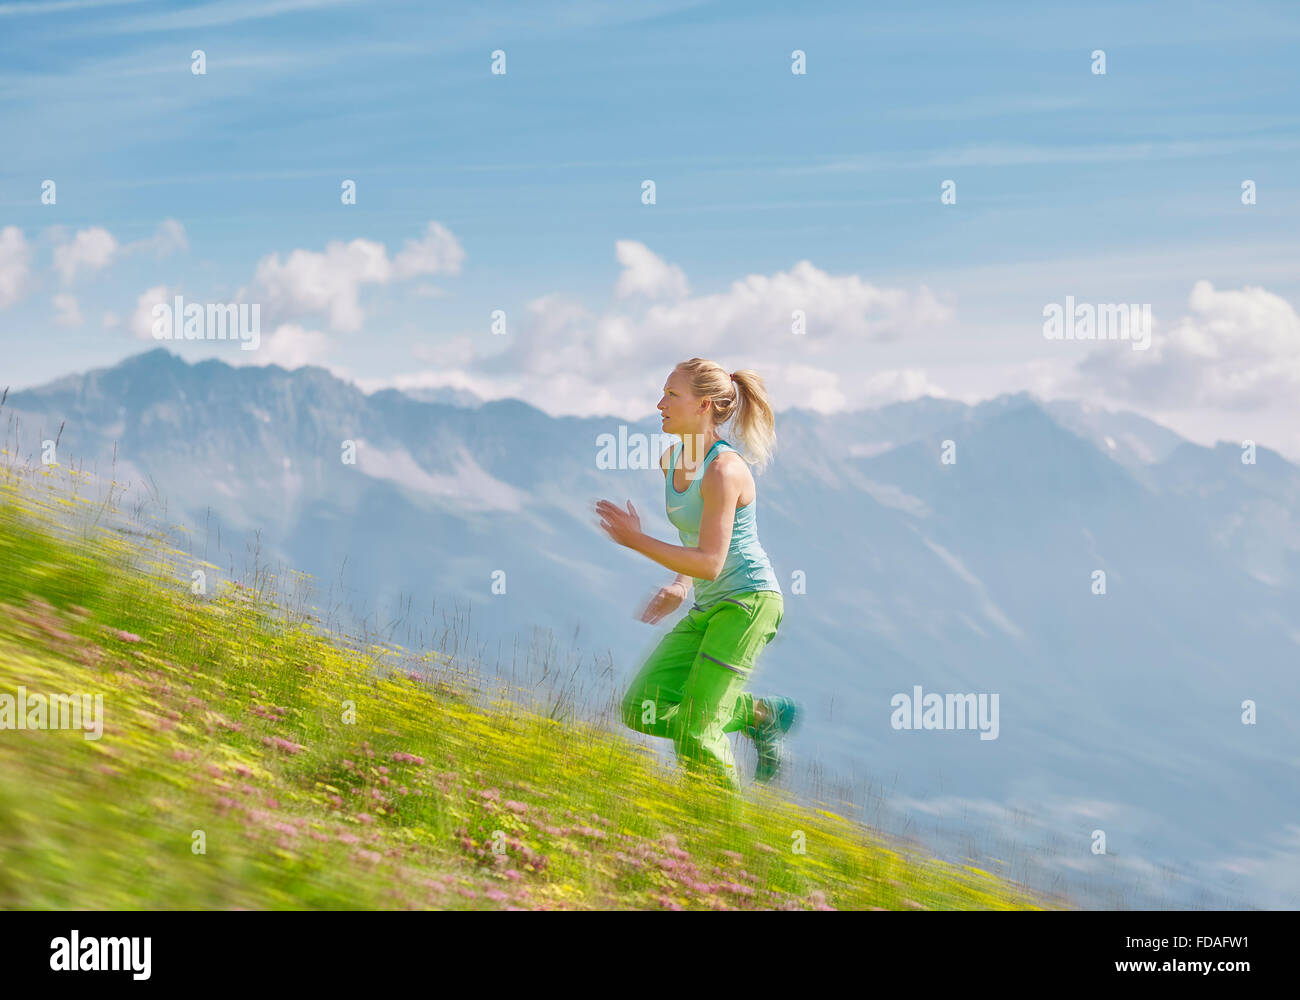 Young woman in her twenties running up field in mountains, Mutterer Alm, Innsbruck, Tyrol, Austria - Stock Image